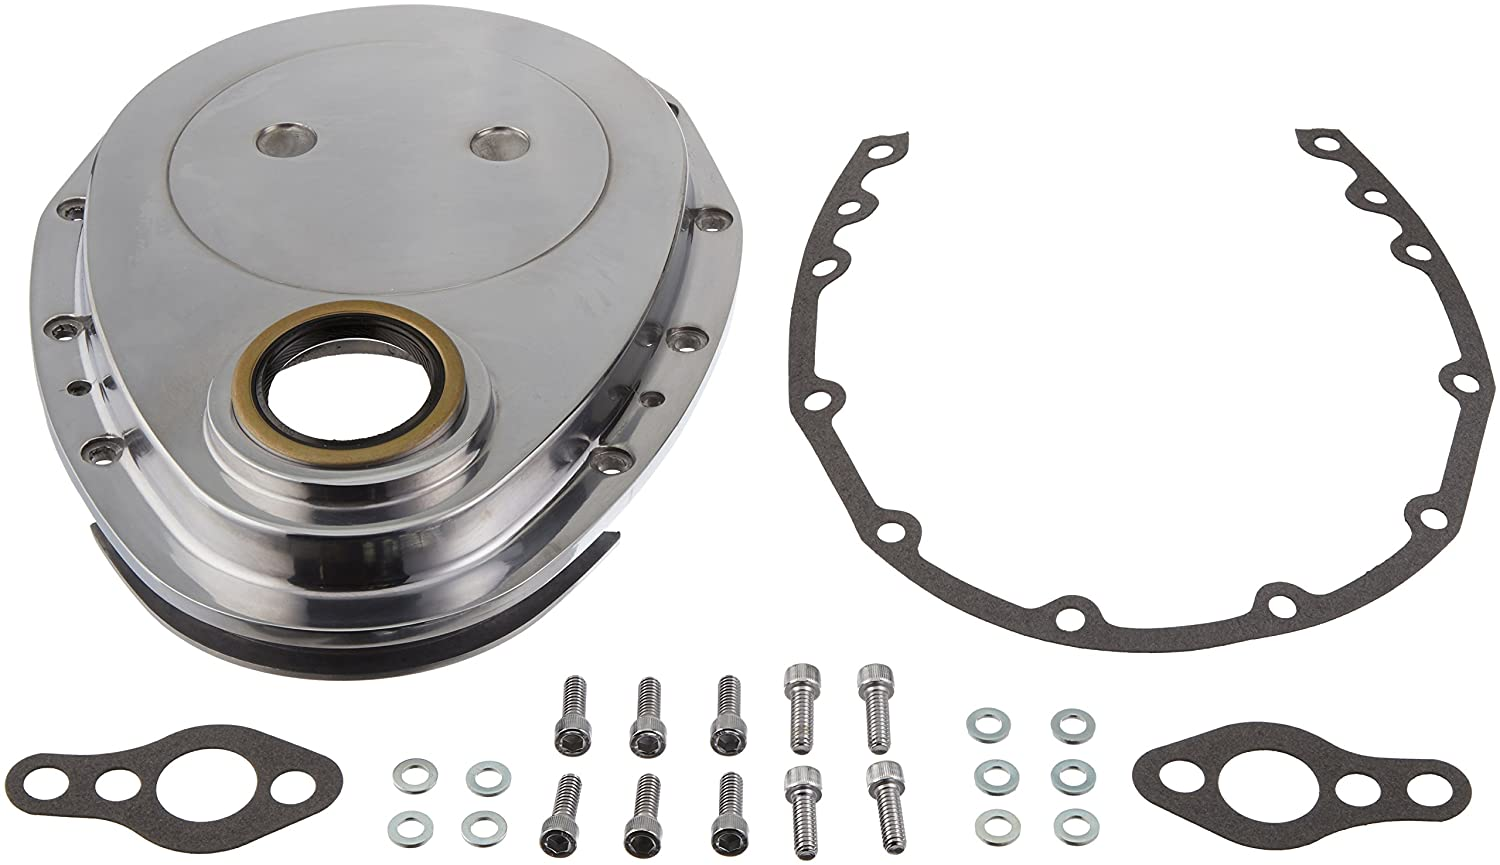 Racing Power Company R6040 Polished Aluminum Timing Cover for Small Block Chevy